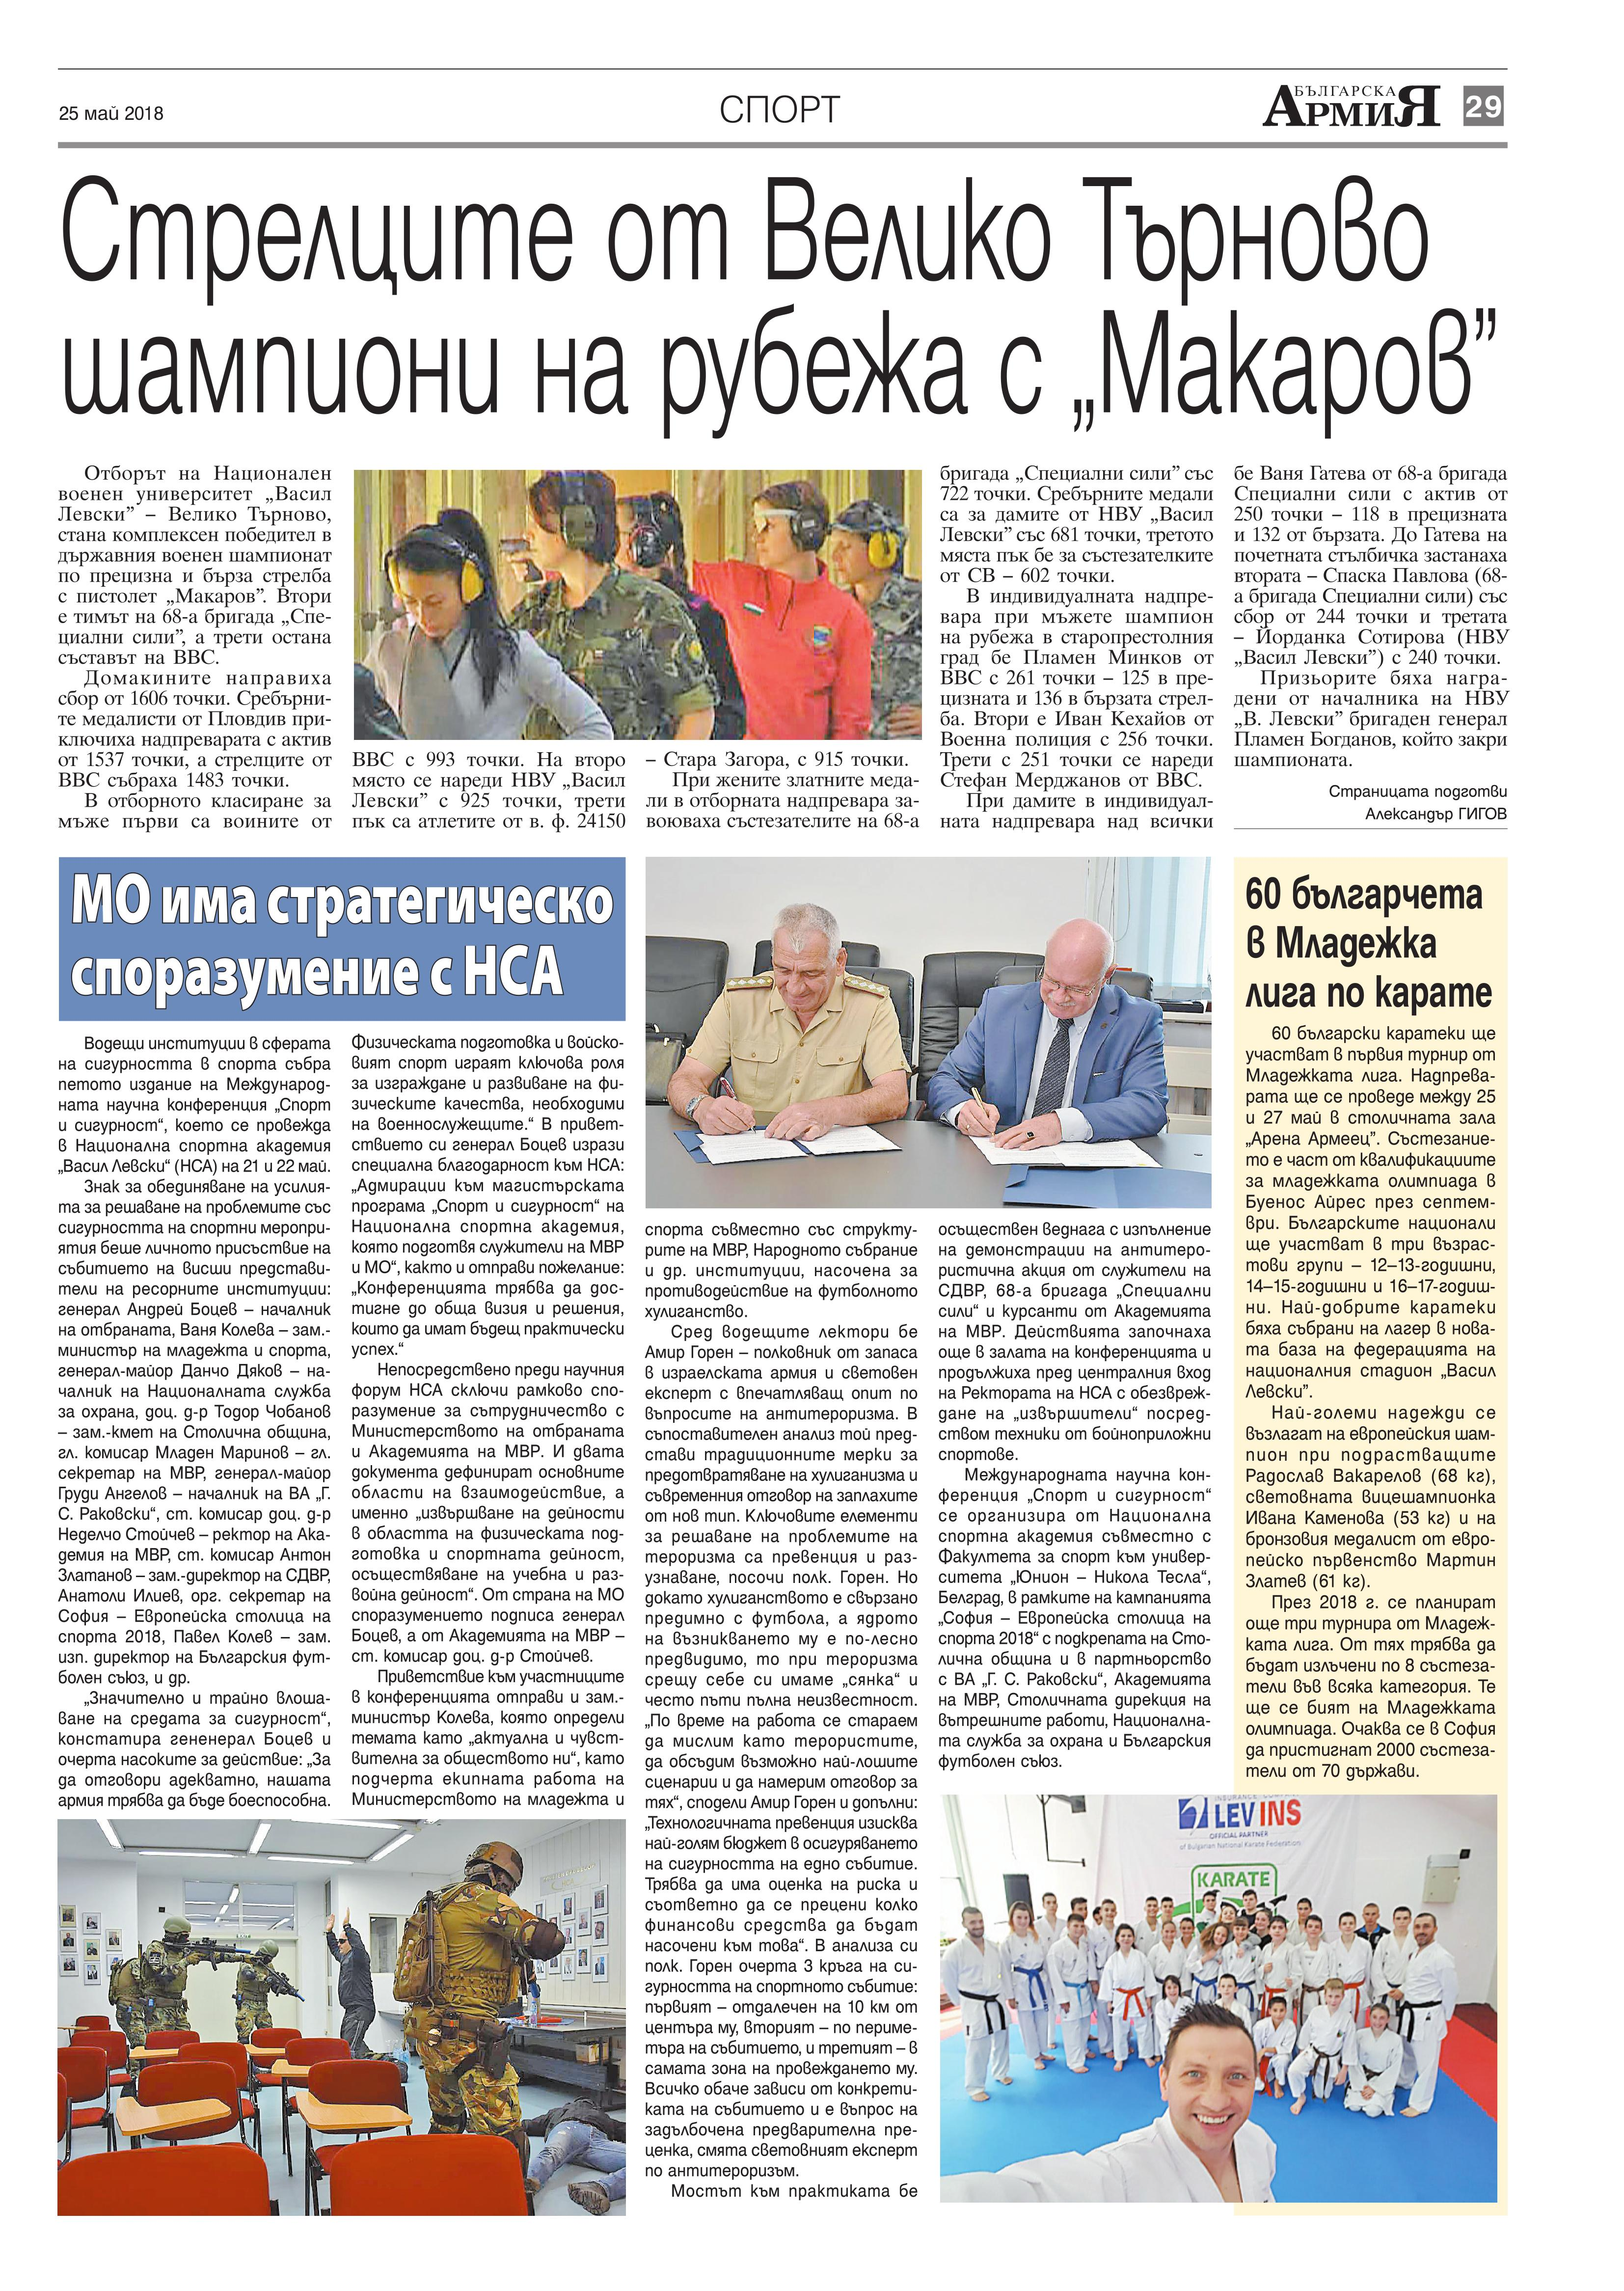 https://armymedia.bg/wp-content/uploads/2015/06/29.page1_-46.jpg